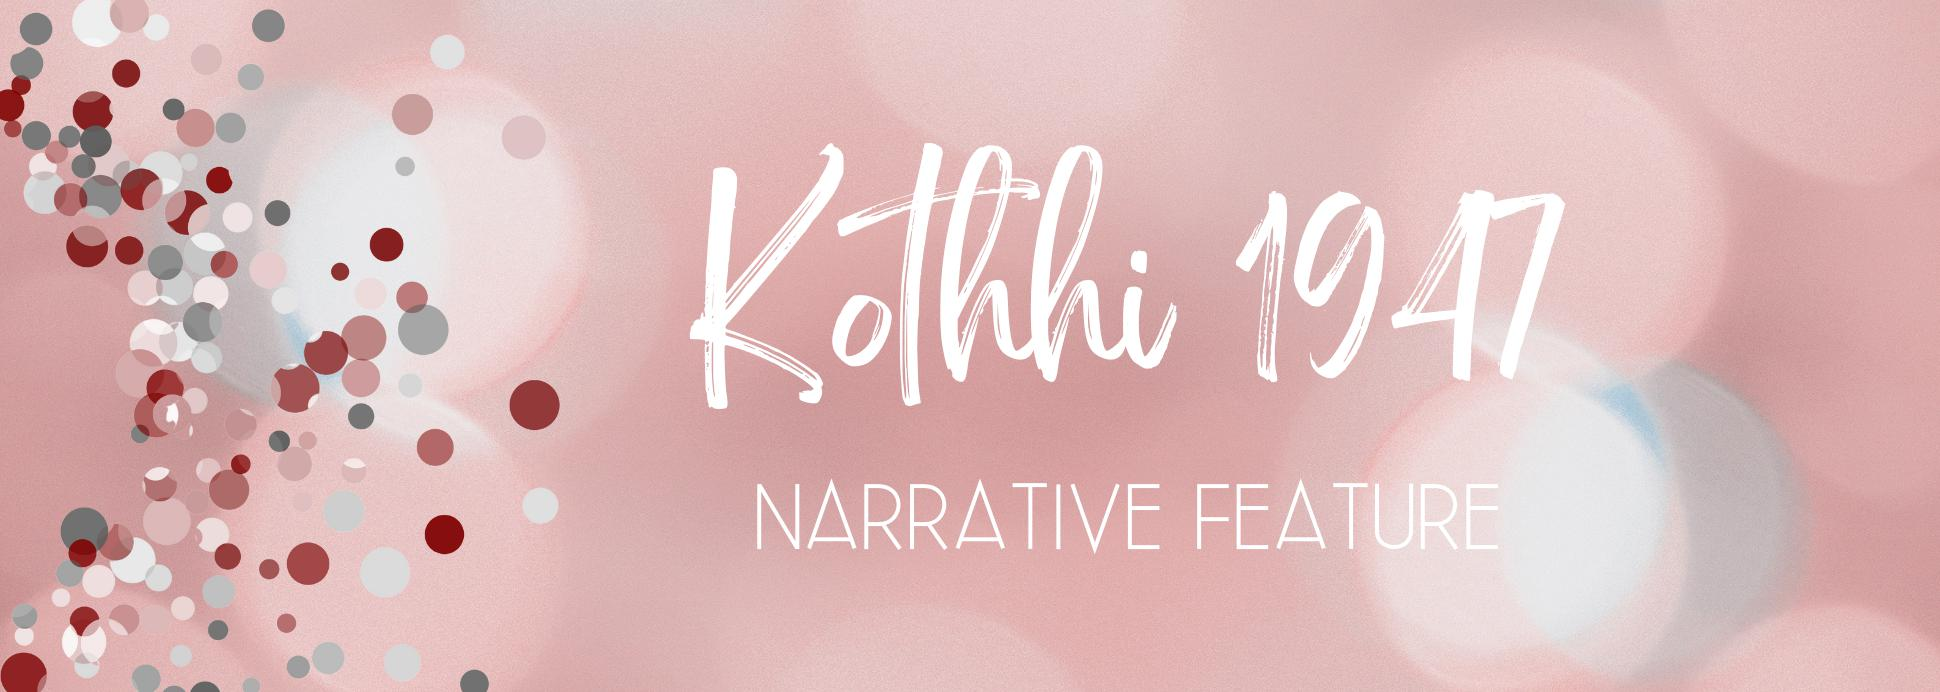 KOTHHI 1947 (Feature)